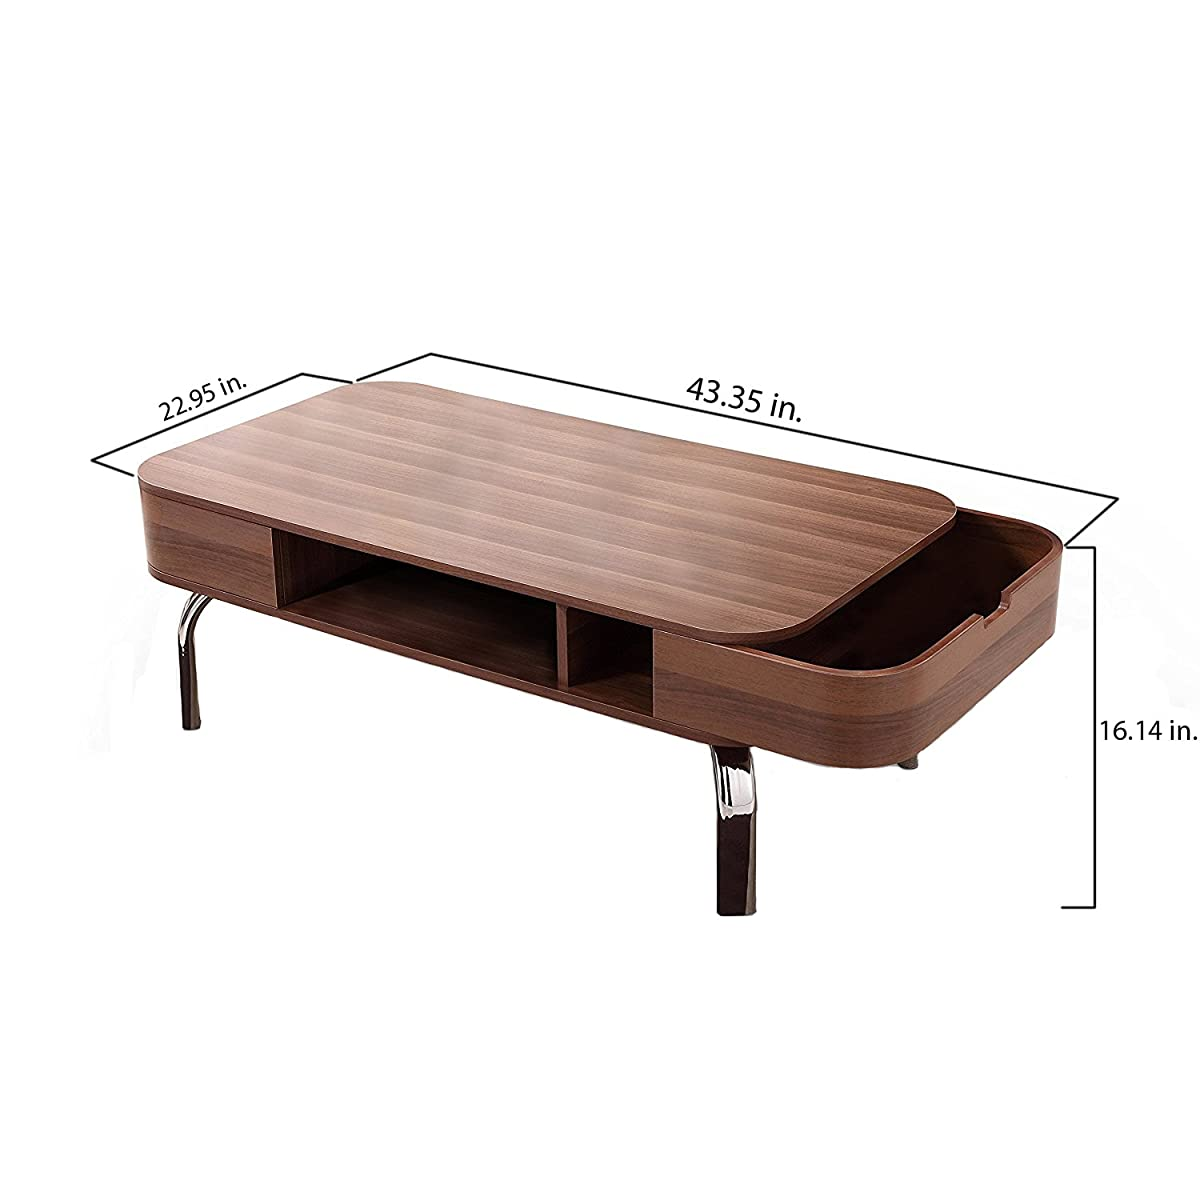 ioHOMES Luxer Coffee Table with Drawers, Walnut